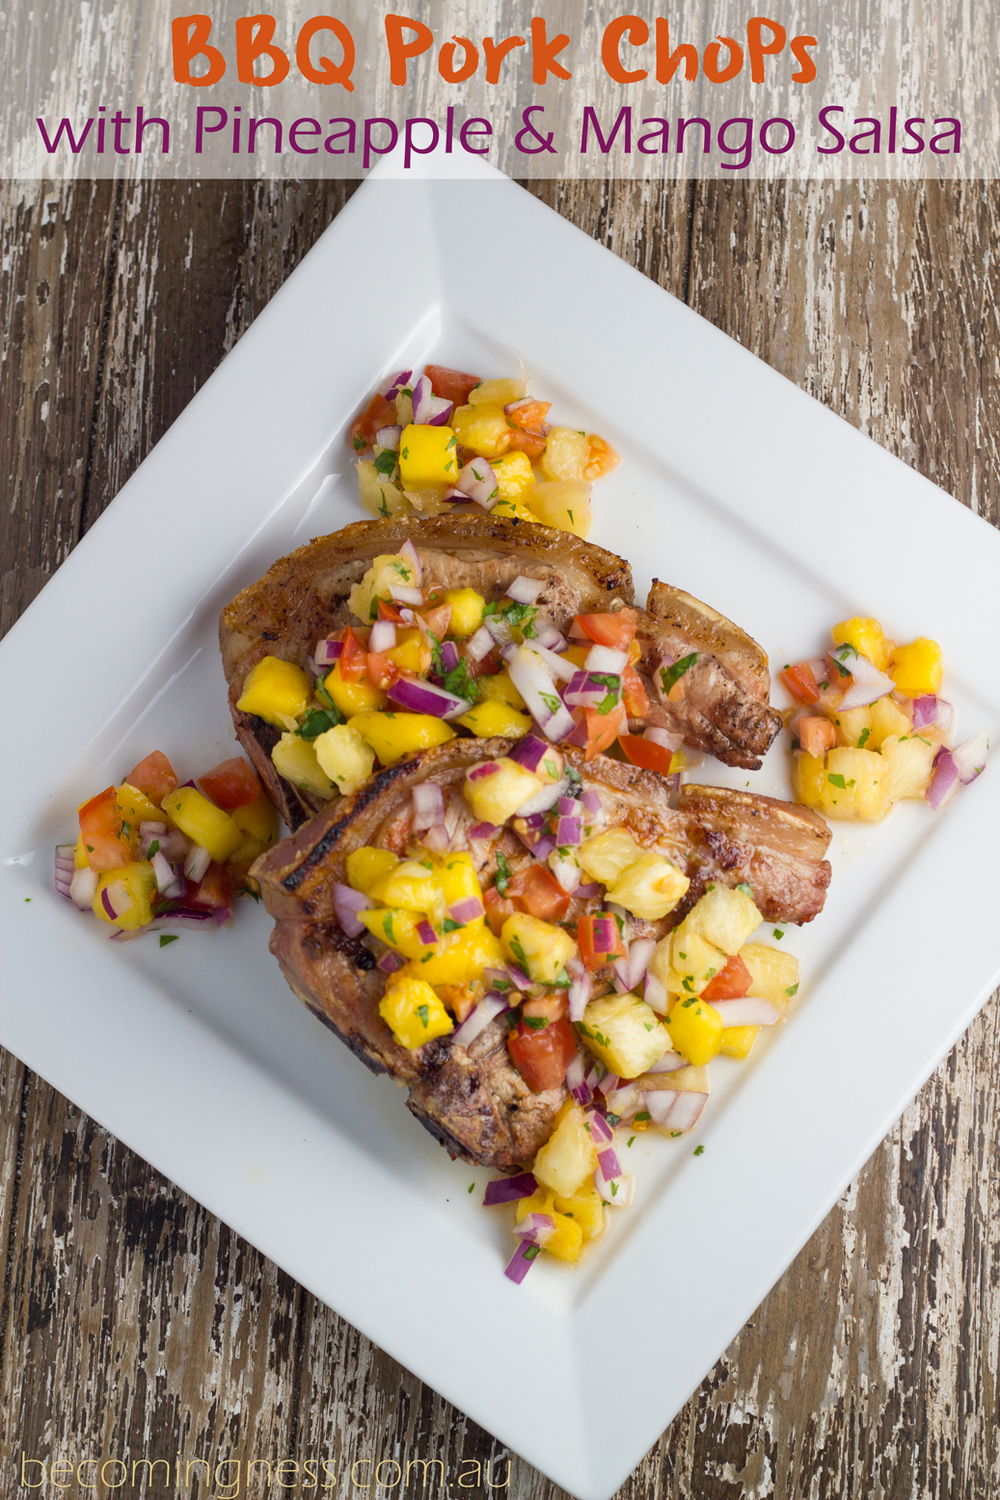 bbq-pork-chops-pineapple-mango-salsa